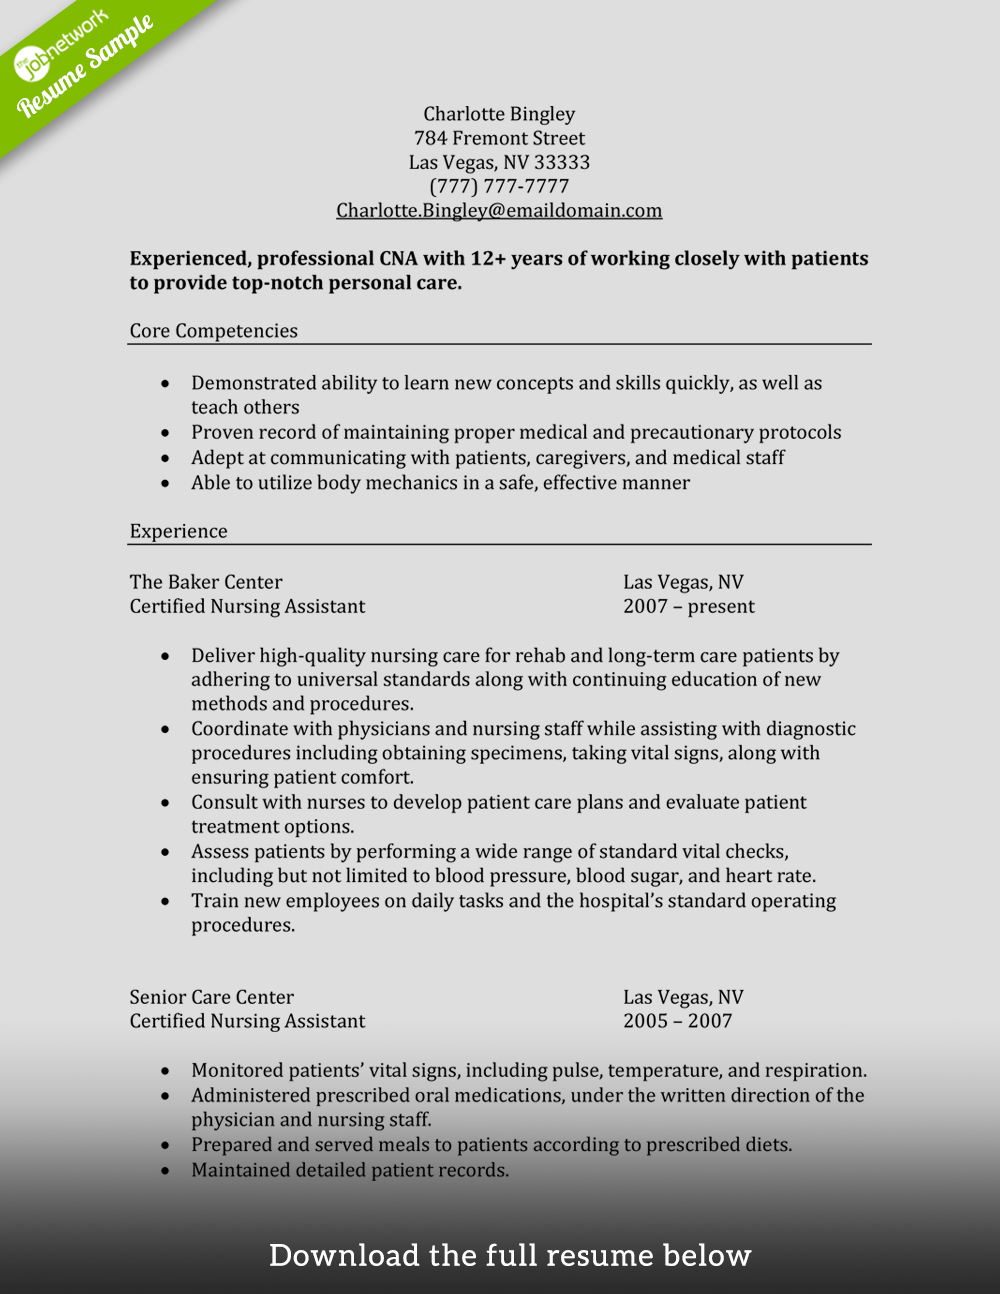 cna resume experienced - Professional Cna Resume